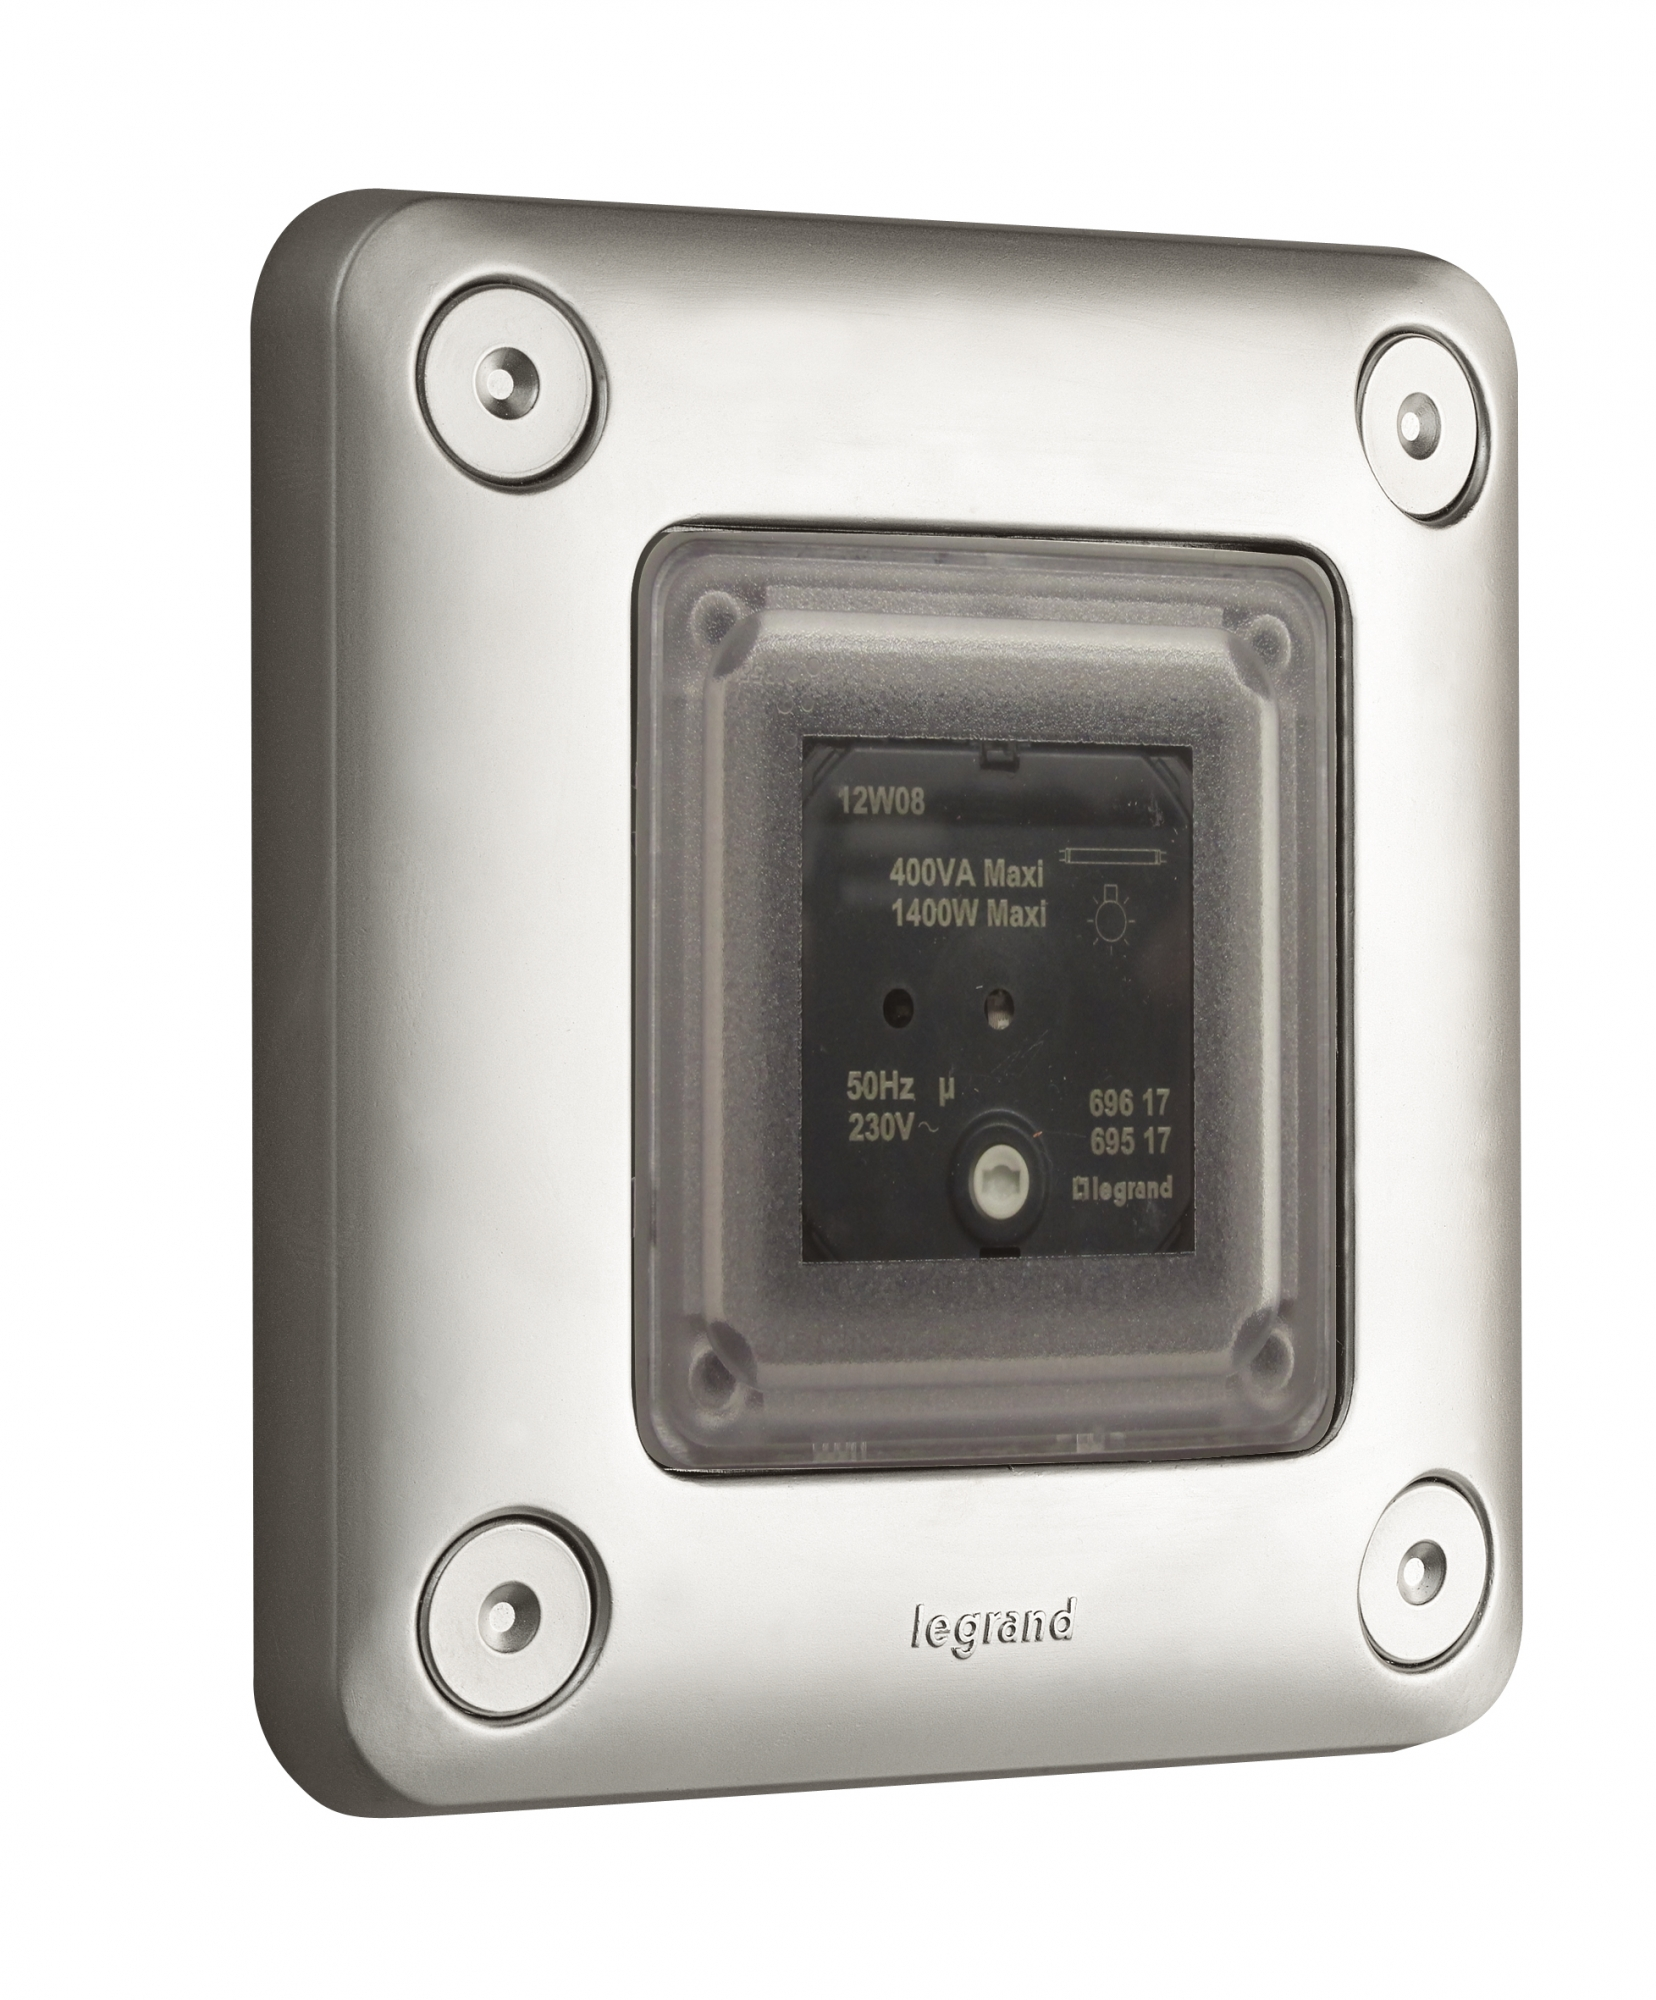 Legrand Light Switches Australia Switch Socket Panel Yidian 2 Way Extends Range With New Products Electrical Connection